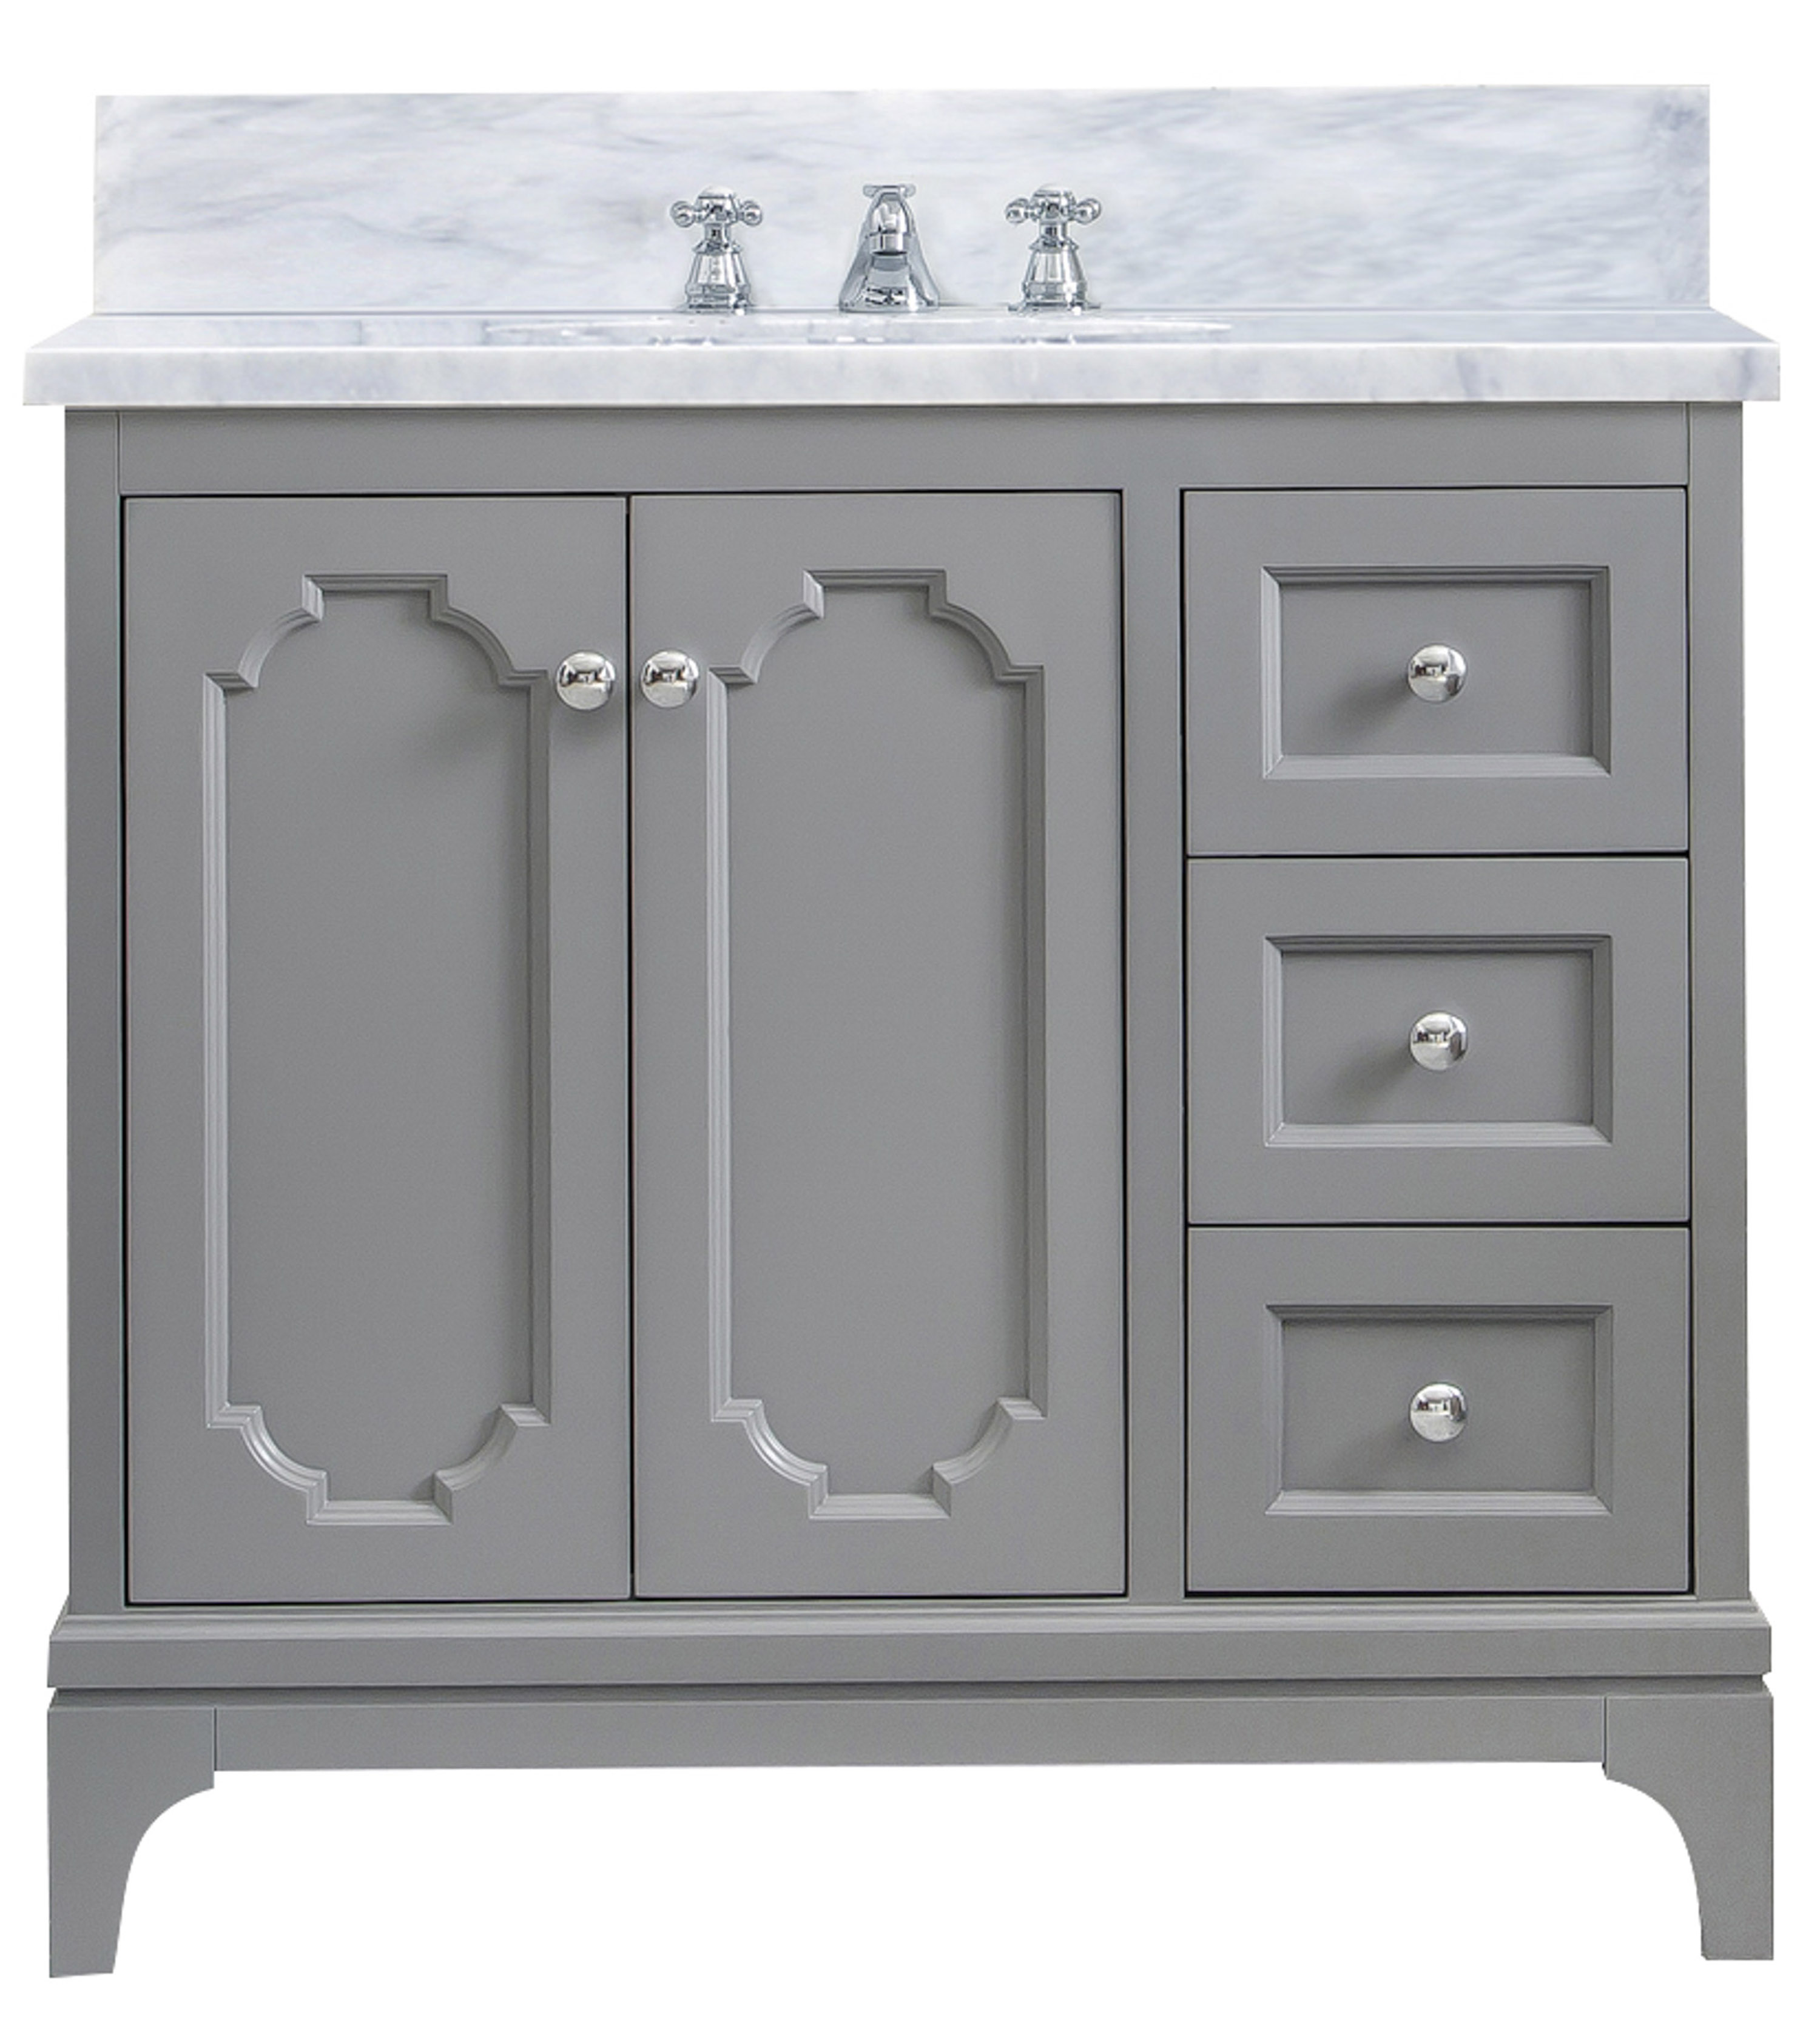 """36"""" Single Sink Carrara White Marble Countertop Vanity in Cashmere Grey with Mirror and Faucet Options"""